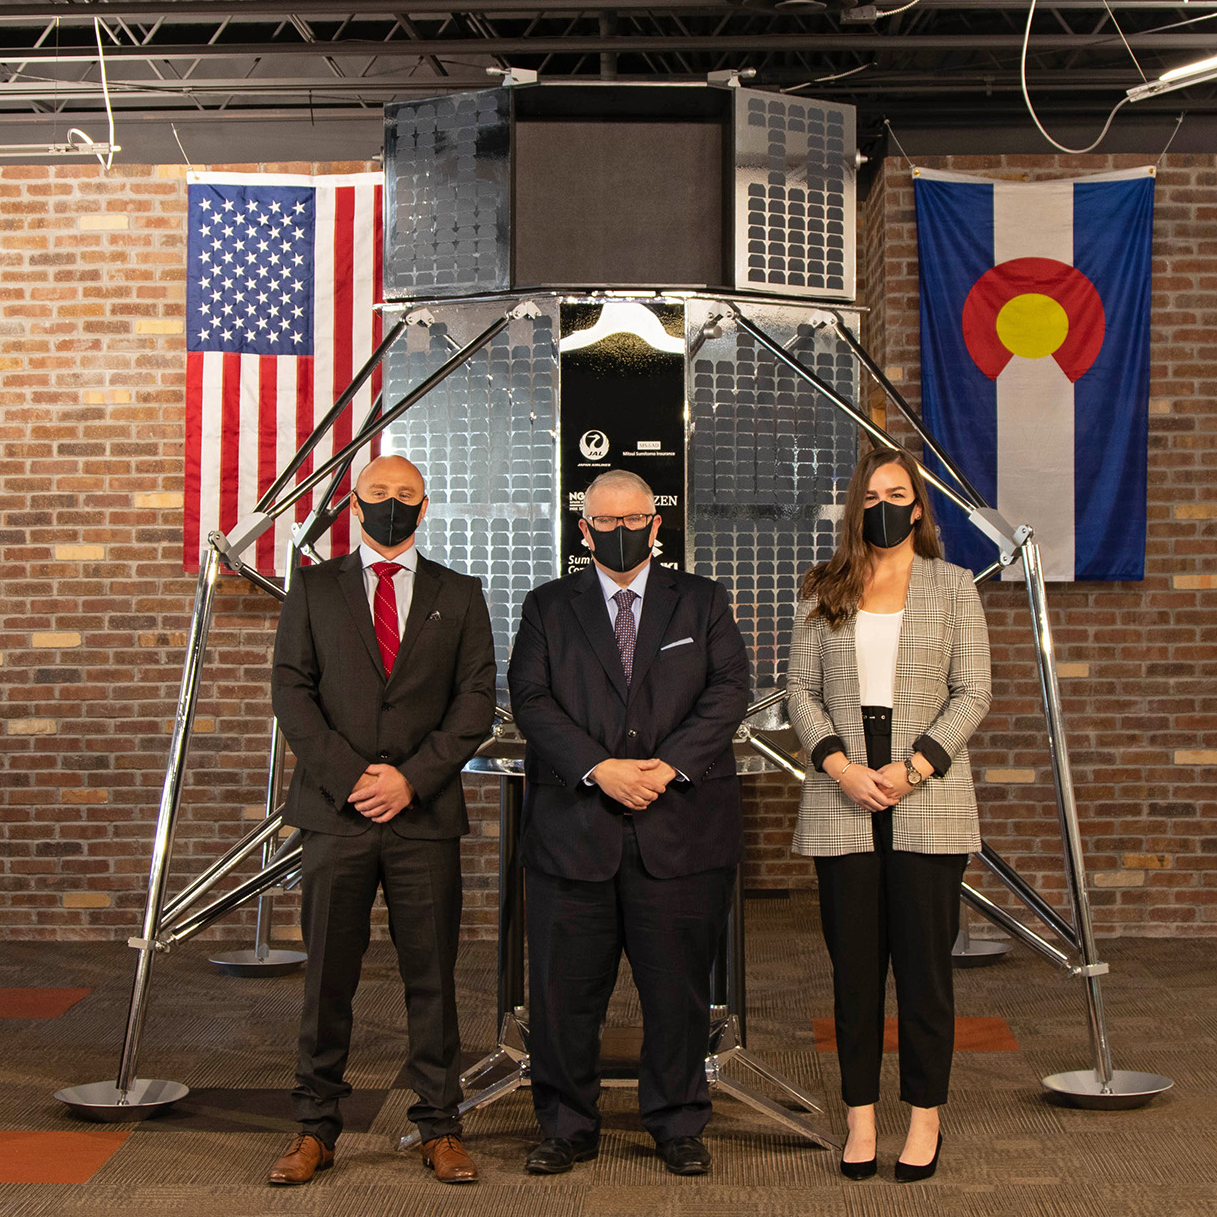 Kevin O'Connell and two others standing in front of a lunar lander with U.S. and Colorado flags in the background